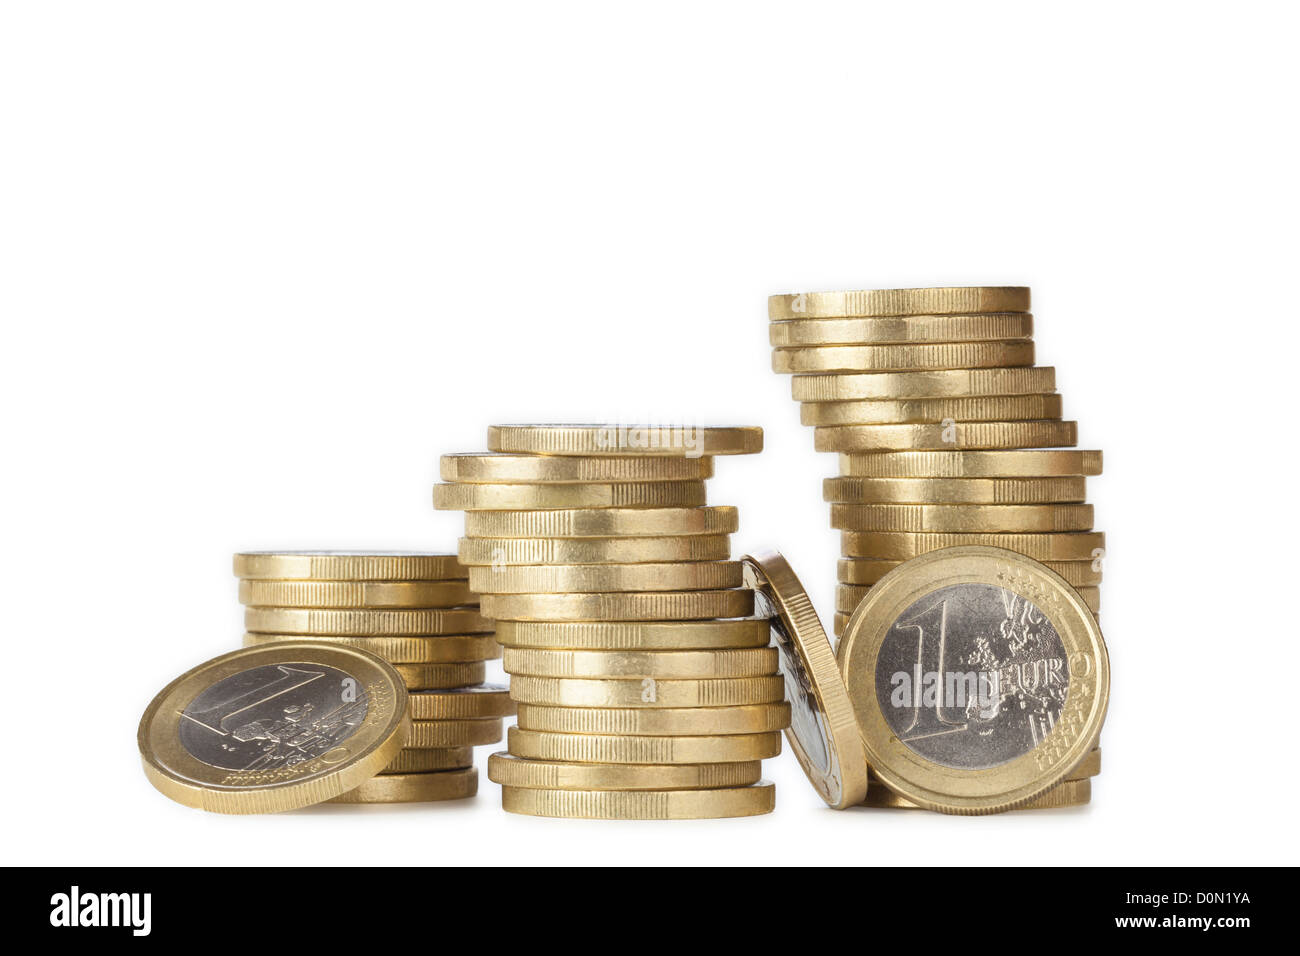 wobbly piles of euro coins - Stock Image